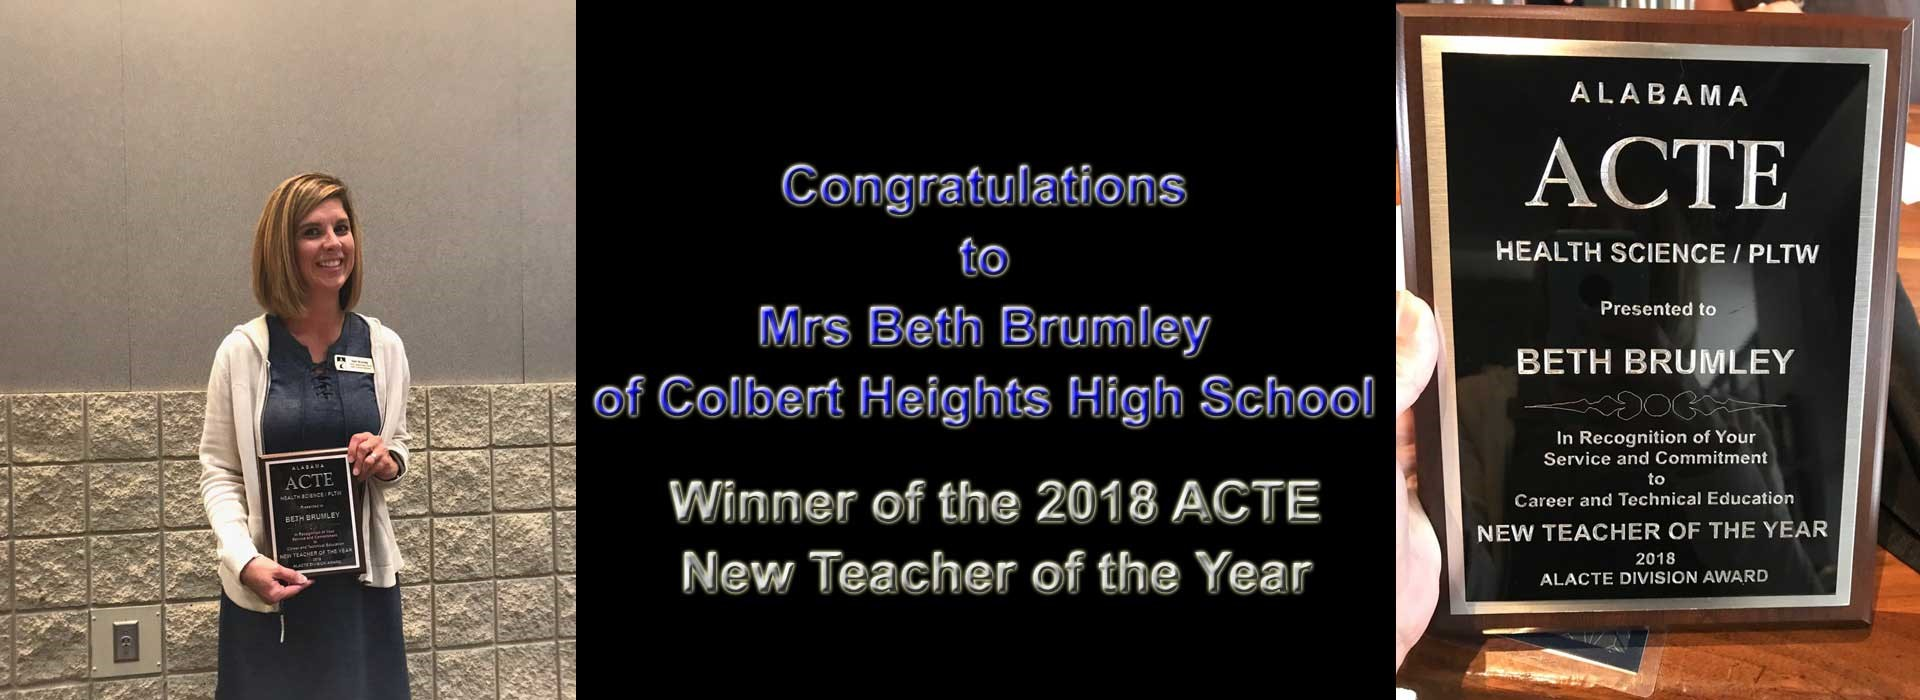 2018 ACTE New Teacher of the Year